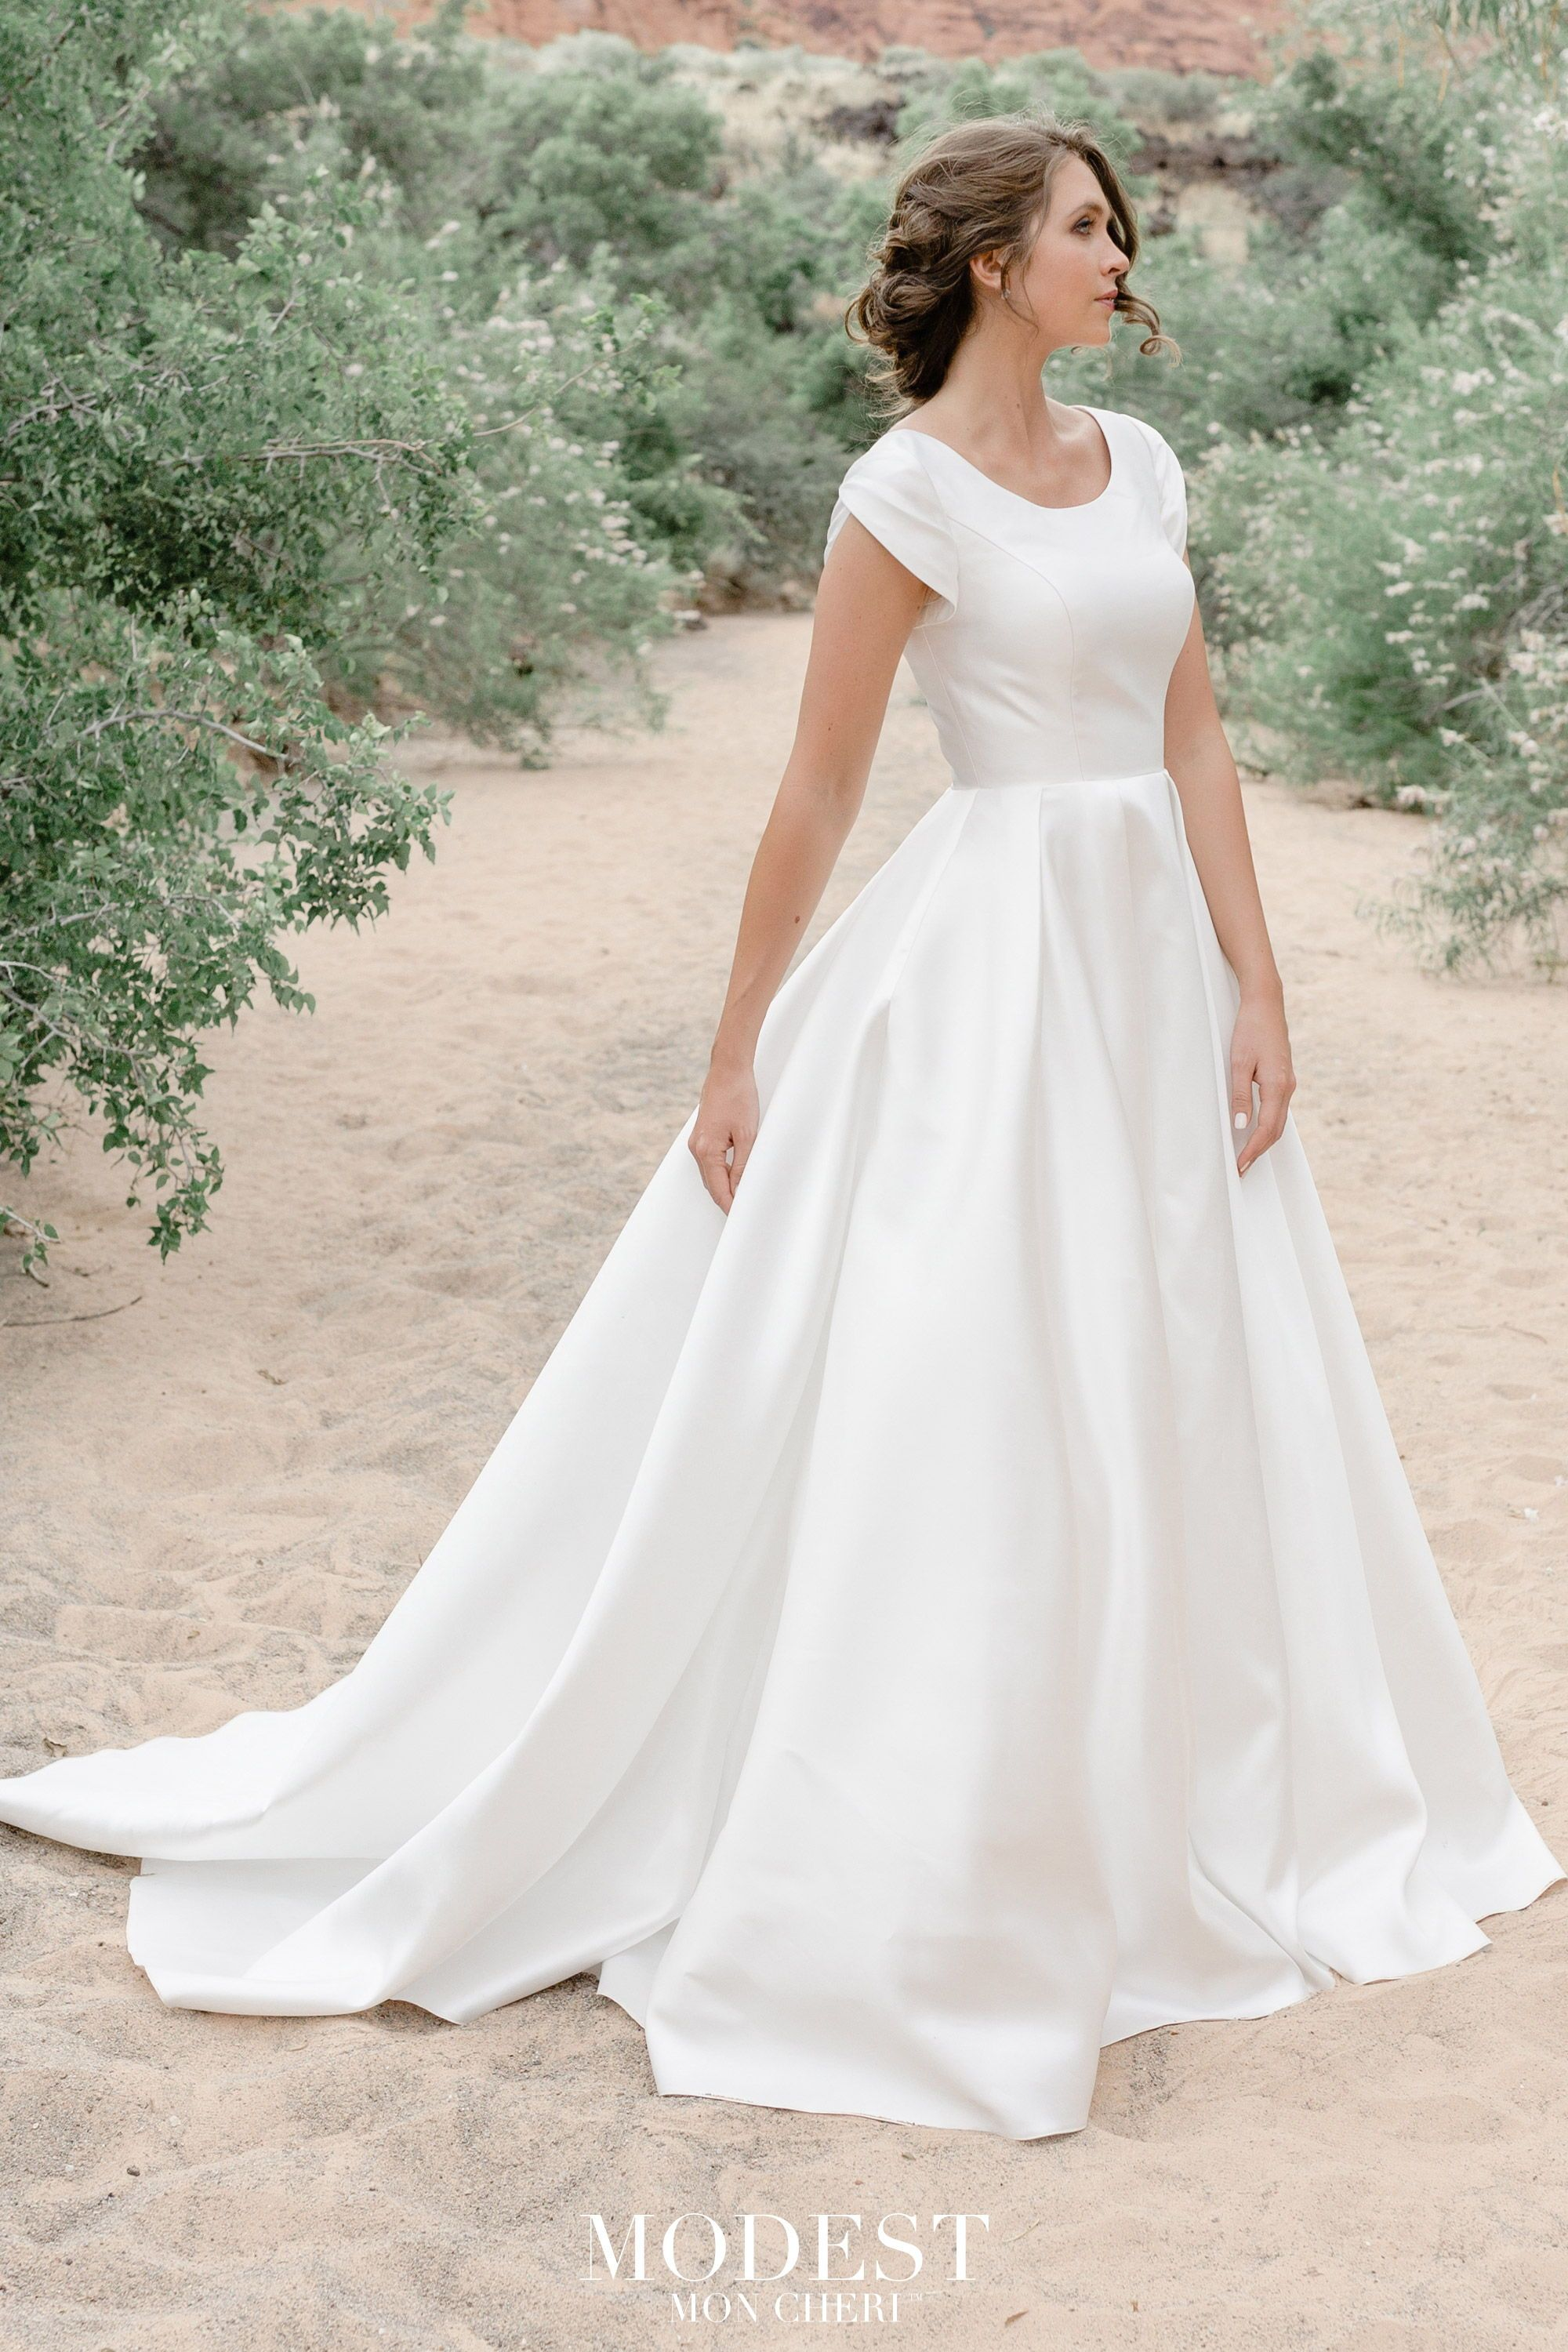 MODEST BY MON CHERI SPRING 2020 COLLECTION AT CELEBRATE